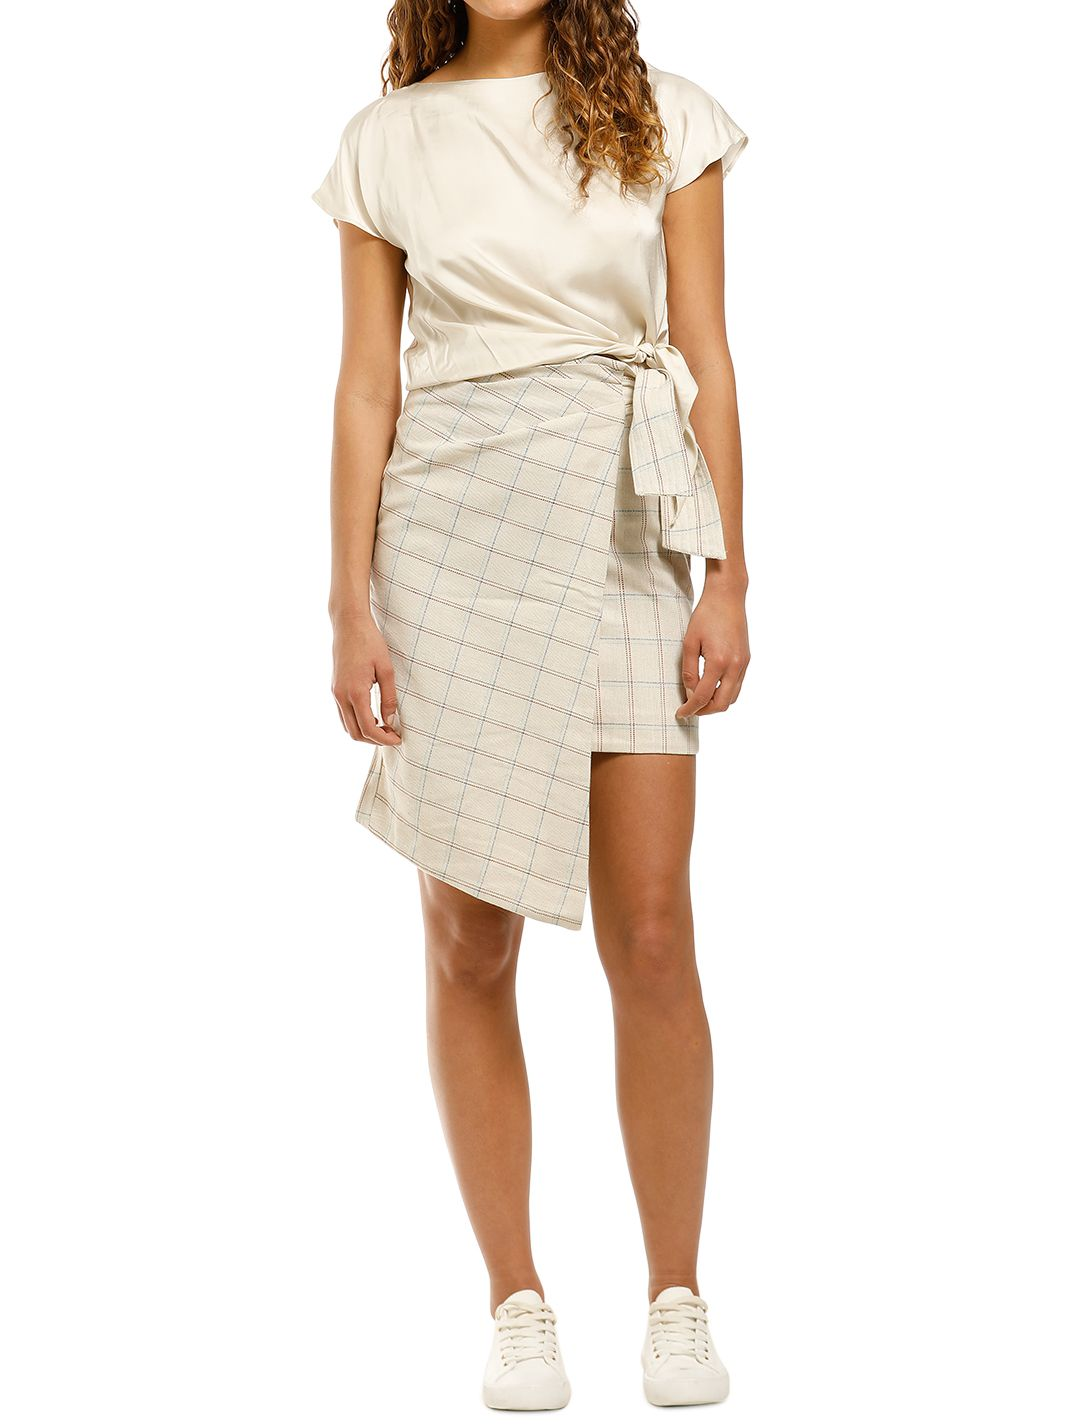 Grace-Willow-Delica-Top-Sand-Front